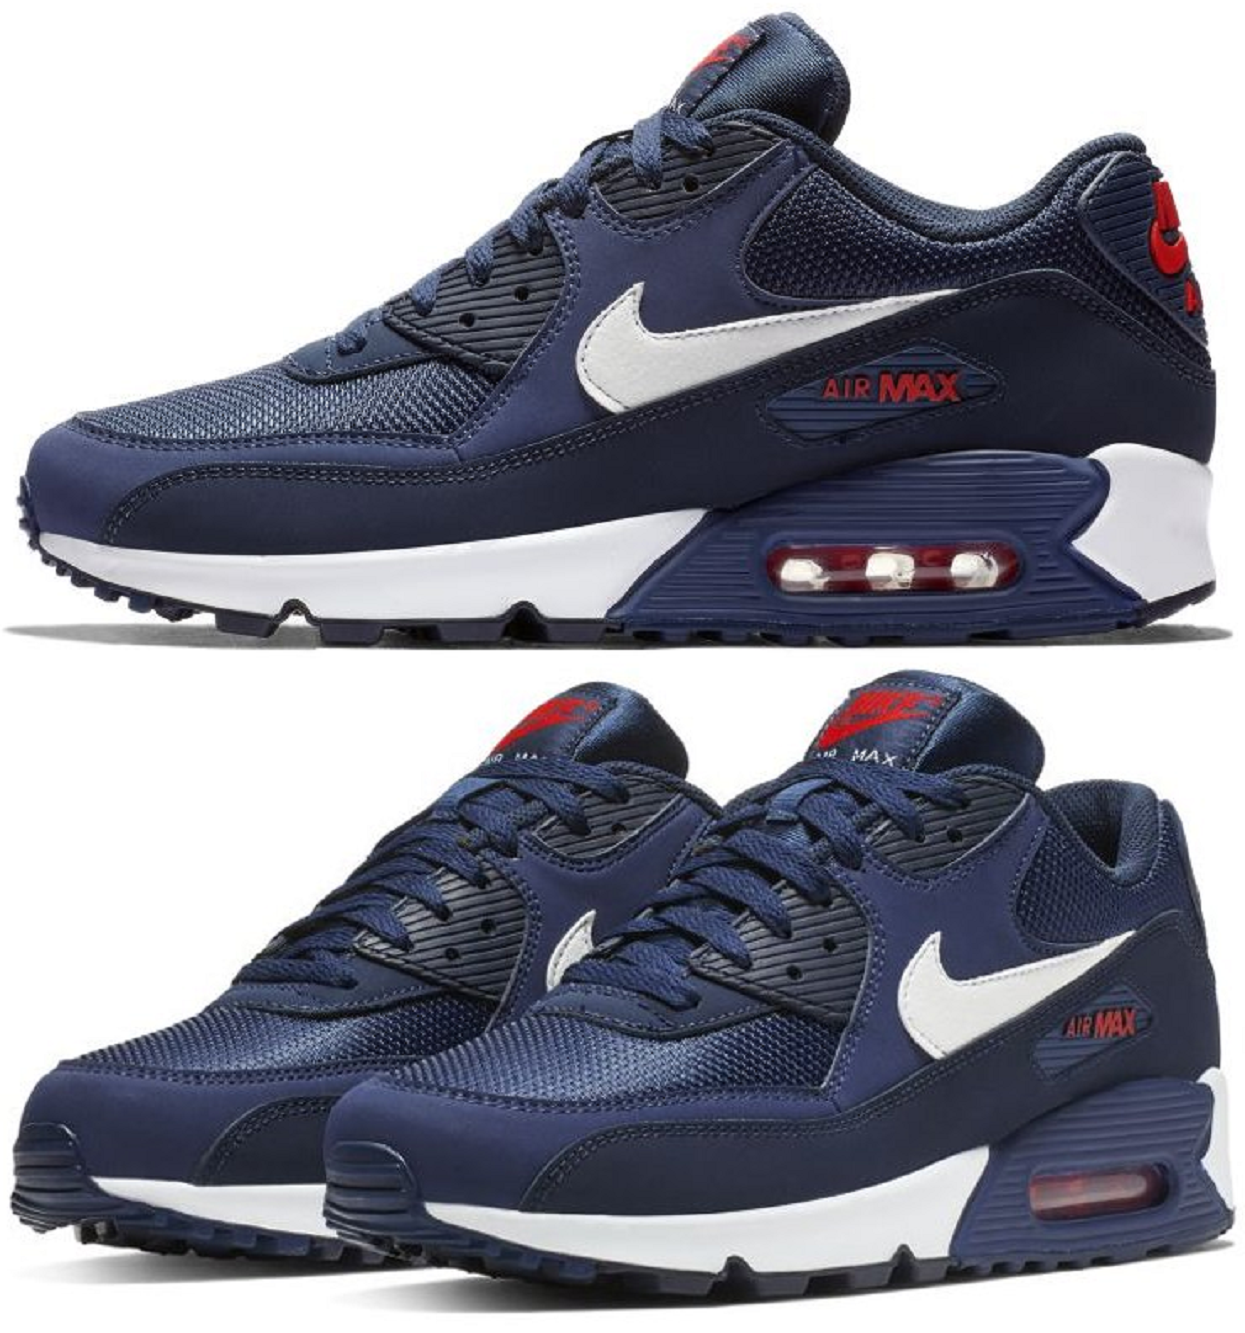 5d05515931 Nike Air Max 90 Essential Sneakers Men's Lifestyle Shoes Navy White Red |  eBay